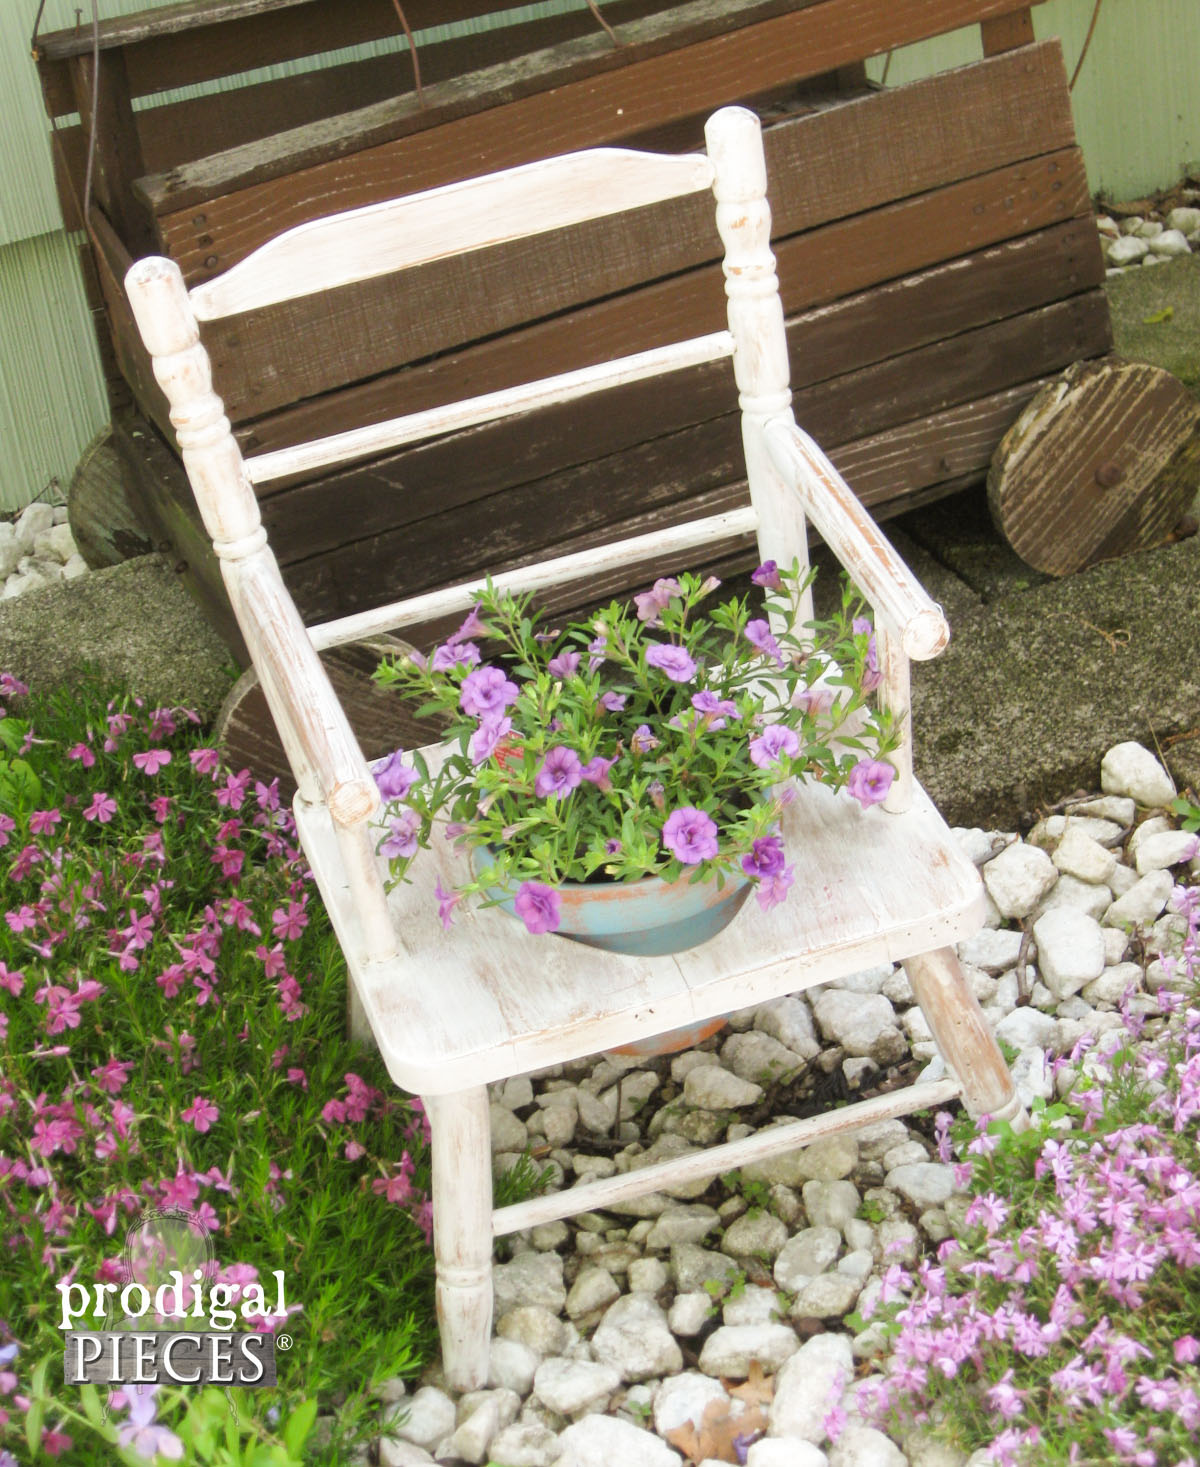 Potty Chair Turned Planter by Prodigal Pieces | prodigalpieces.com